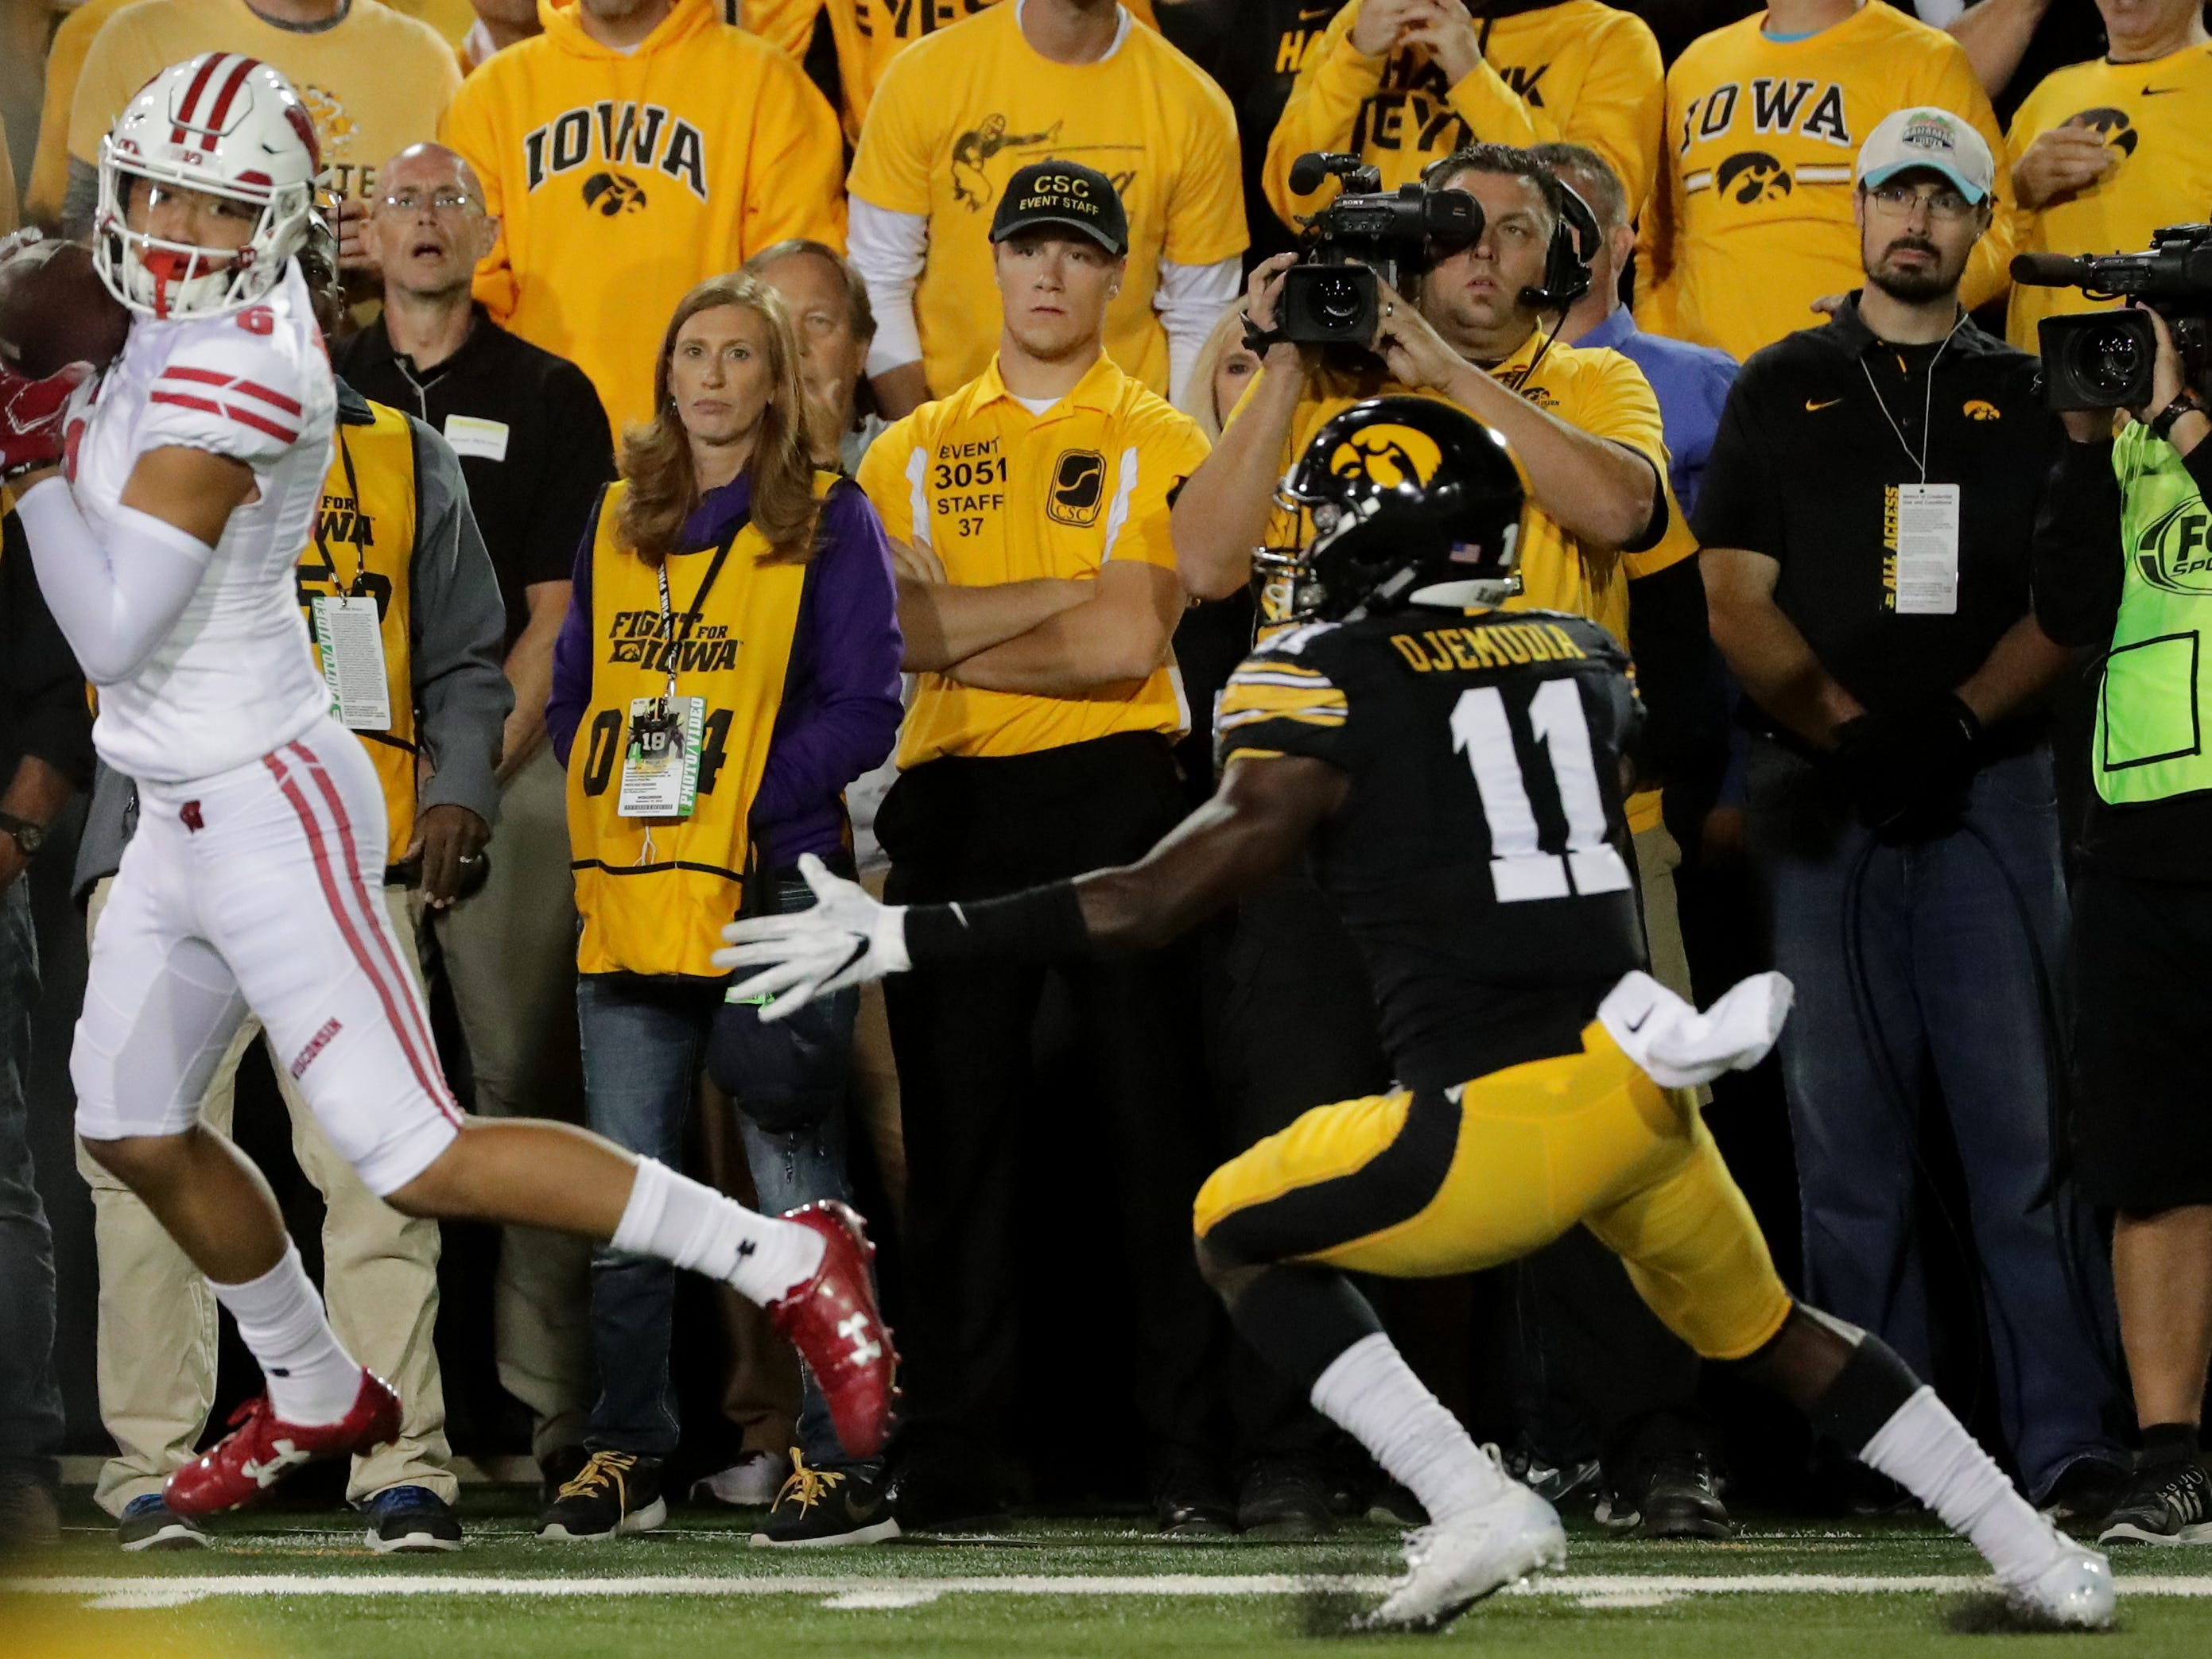 Wisconsin wide receiver Danny Davis III catches a go-ahead touchdown  while being covered by Iowa defensive back Michael Ojemudia.